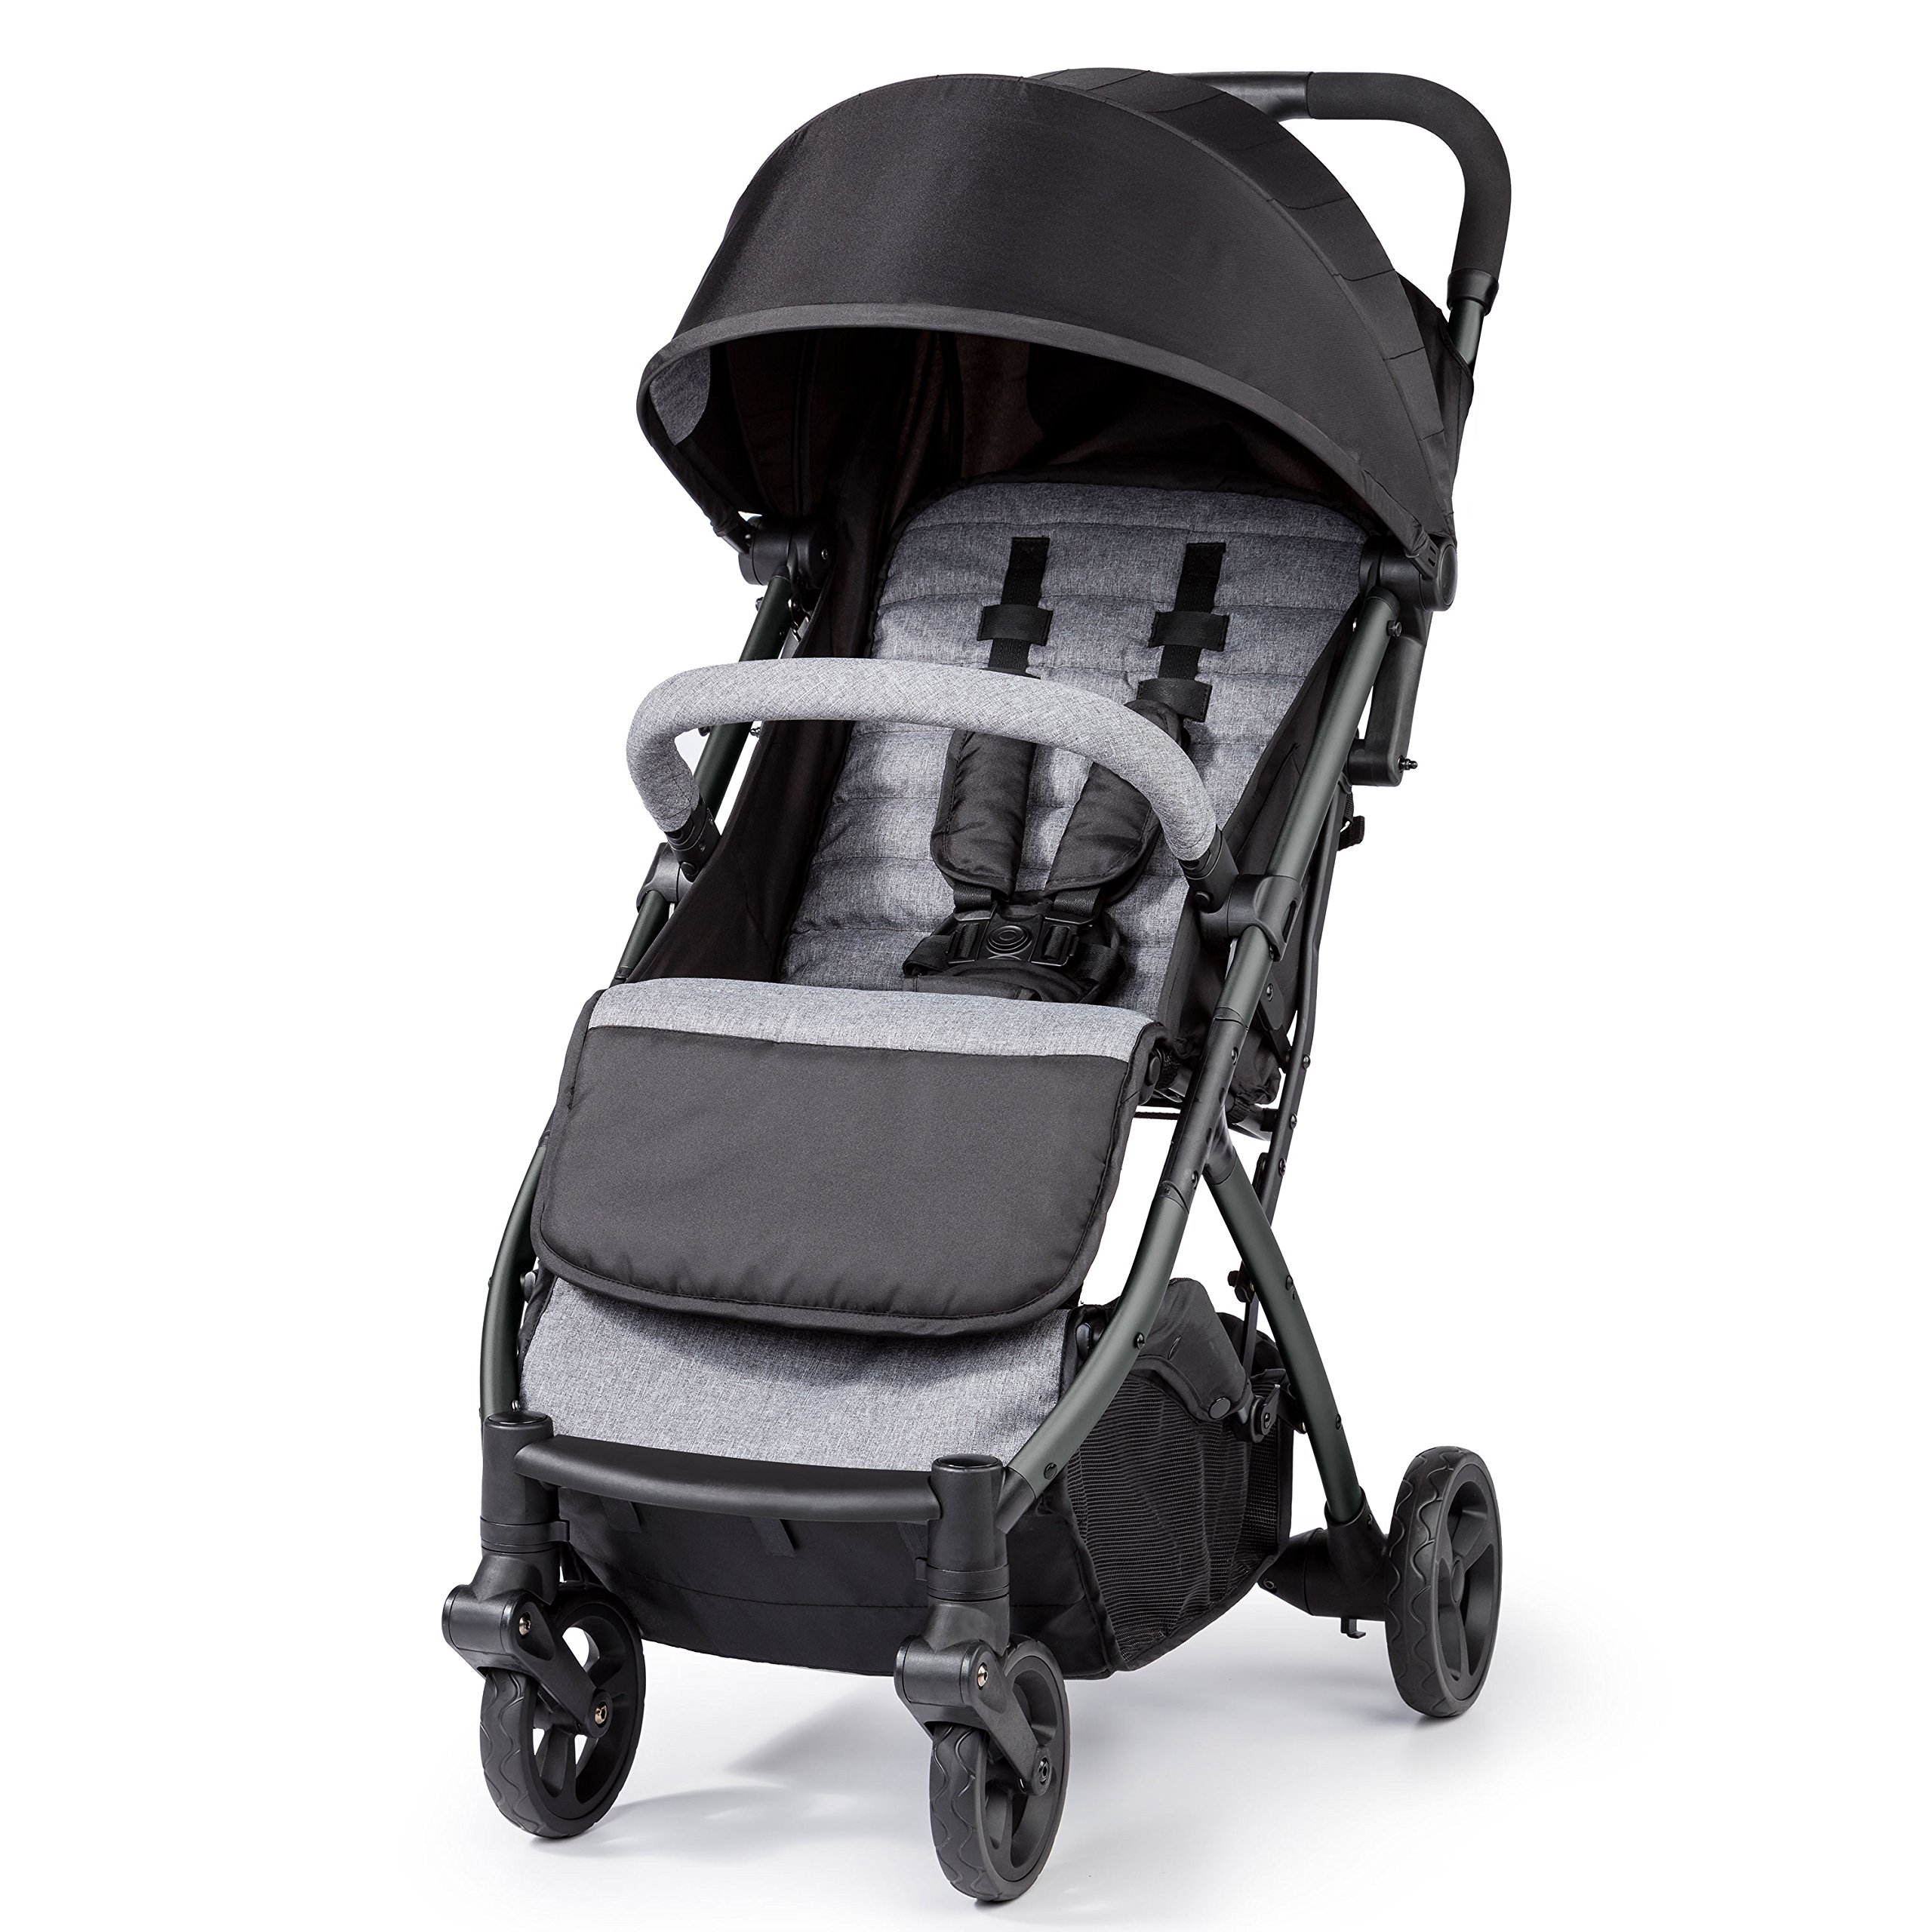 Summer Infant 3DPac Stroller, Lightweight and Compact Carseat Adaptable Design with Convenient One-Hand Fold, Reclining Seat and Extra-Large Canopy